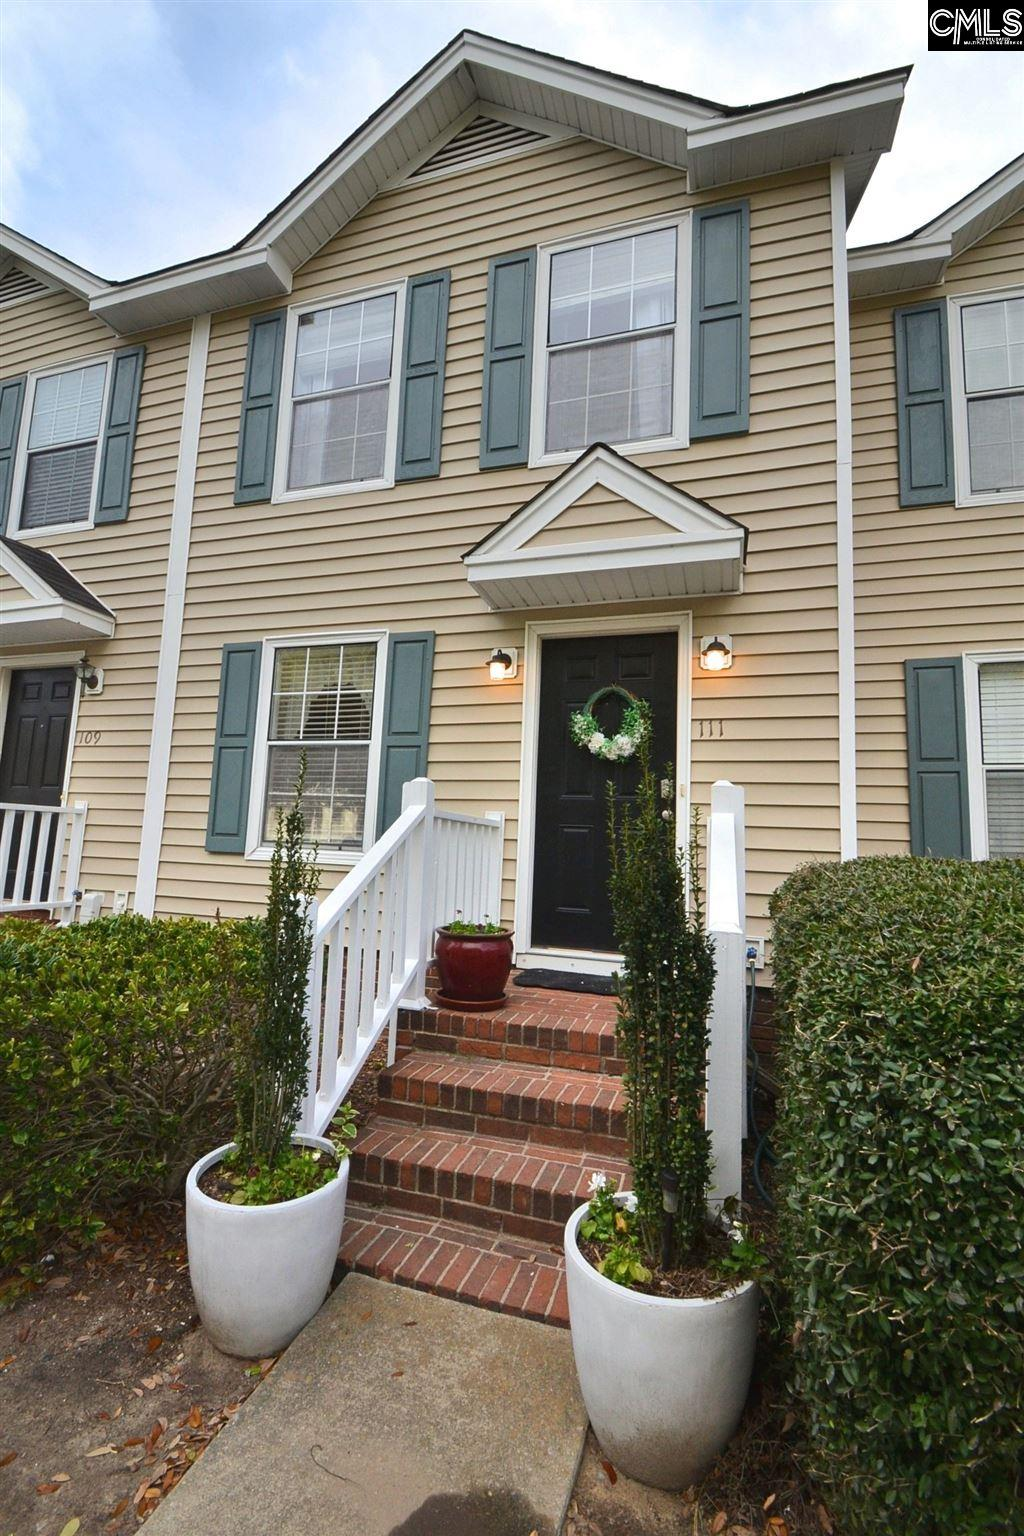 111 Mulberry Columbia, SC 29201